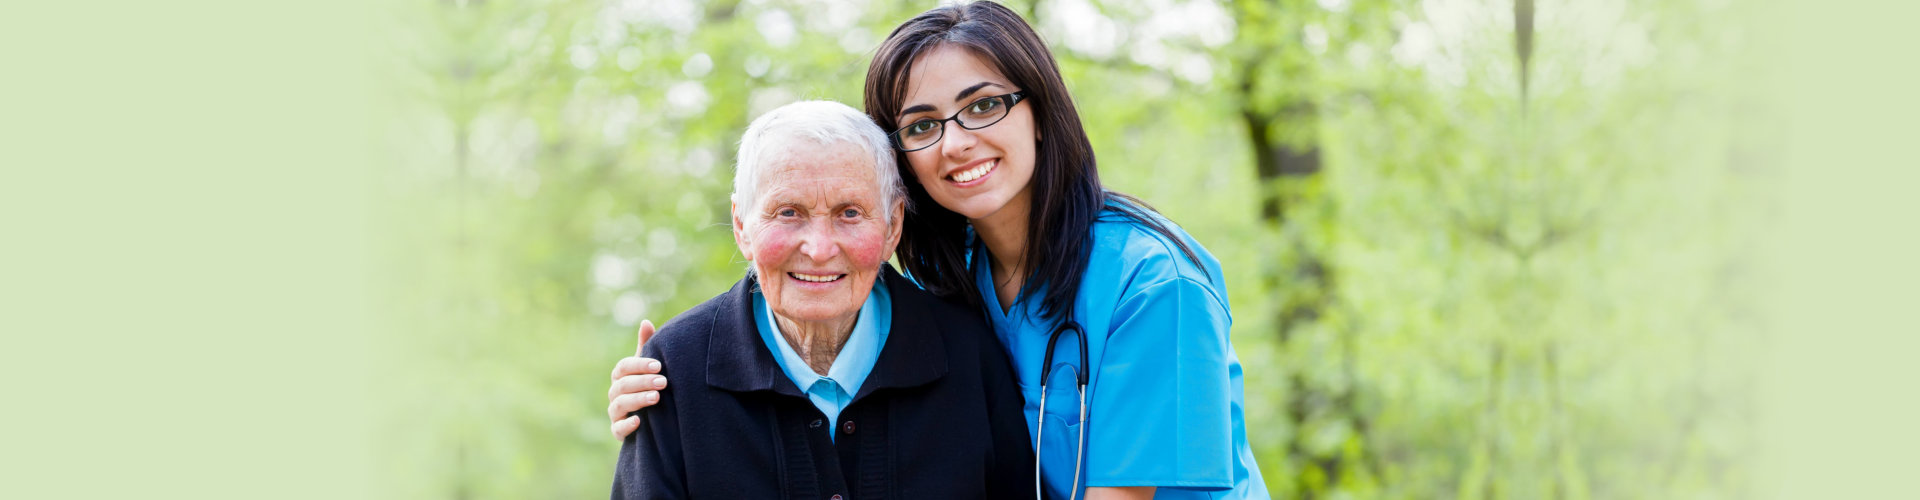 caregiver with elder woman outdoors